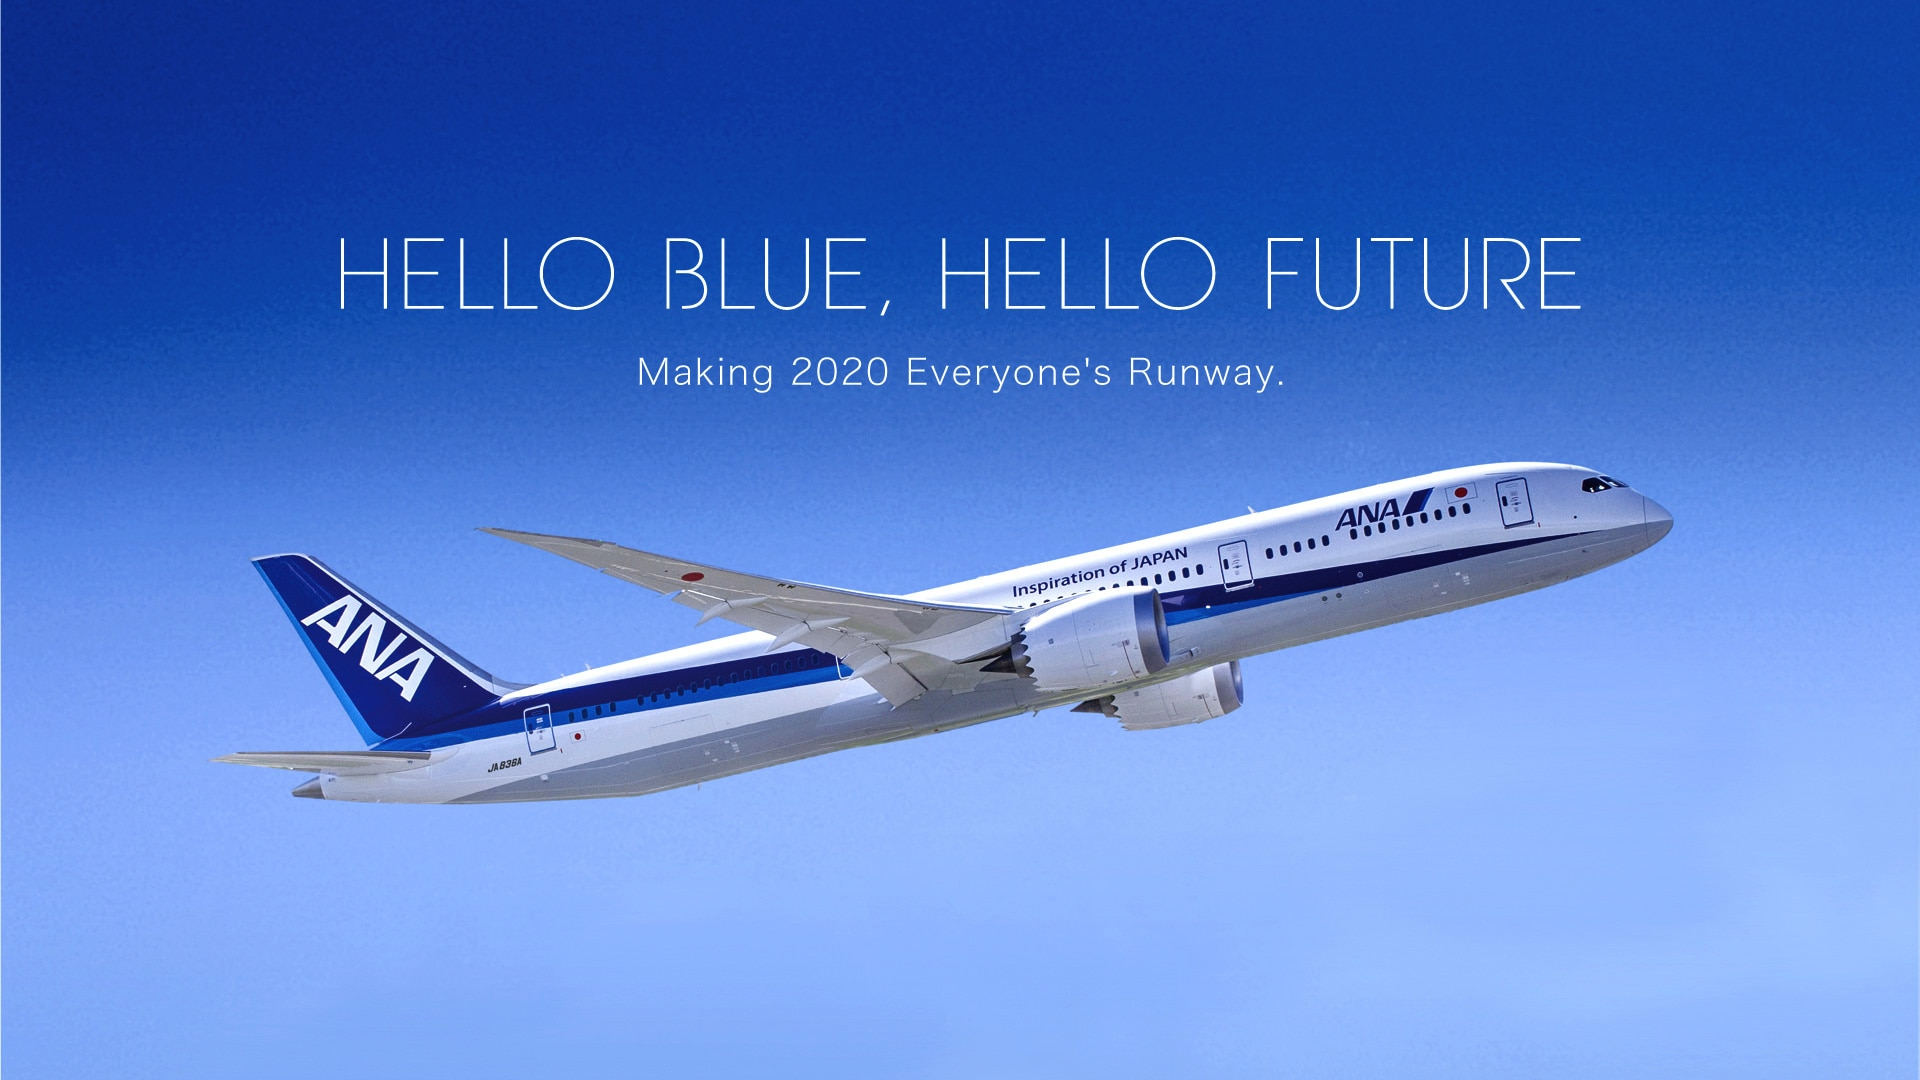 HELLO BLUE, HELLO FUTURE Making 2020 Everyone's Runway.